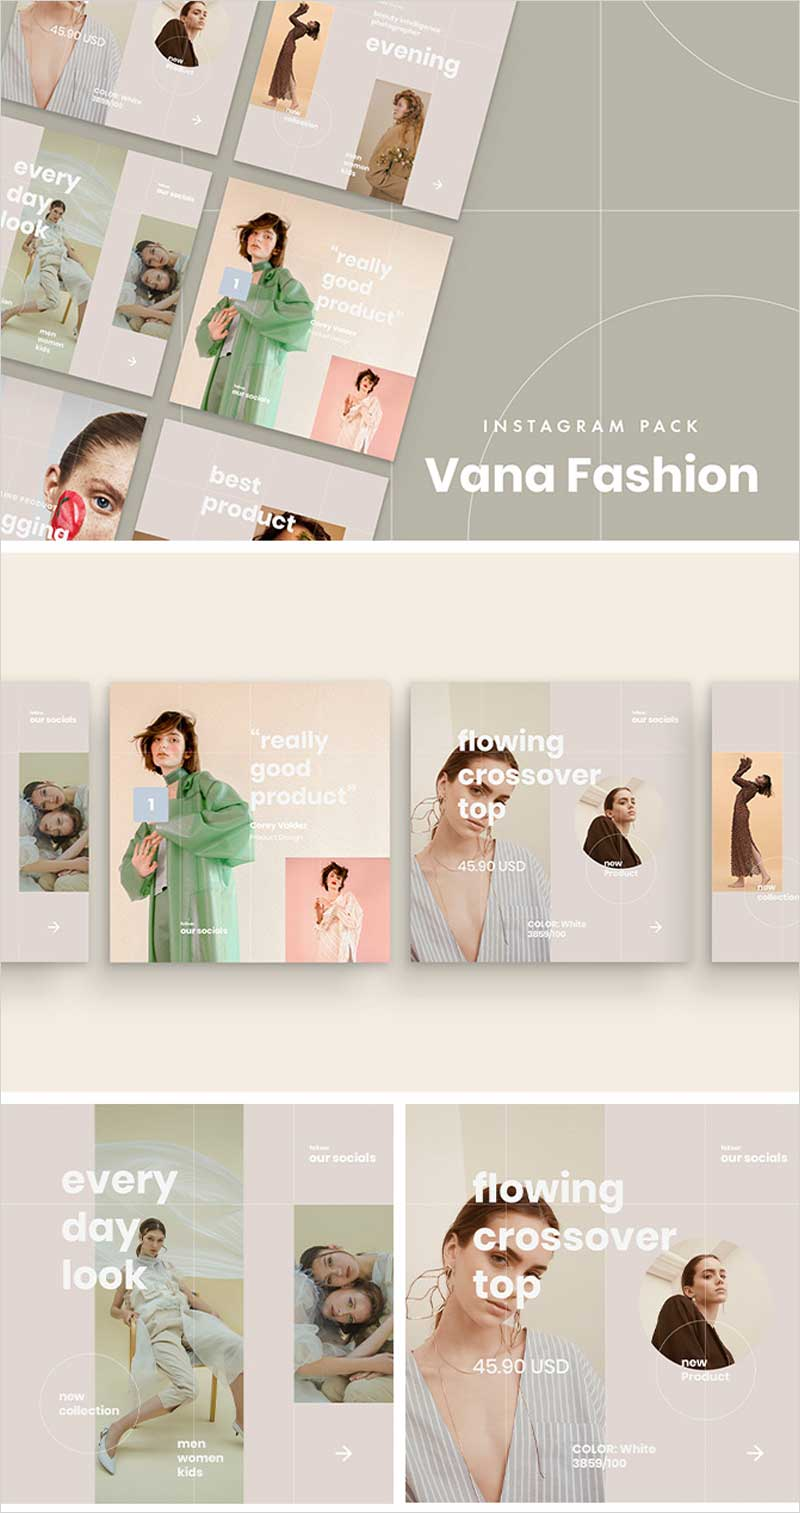 Vana-Fashion-Instagram-Pack